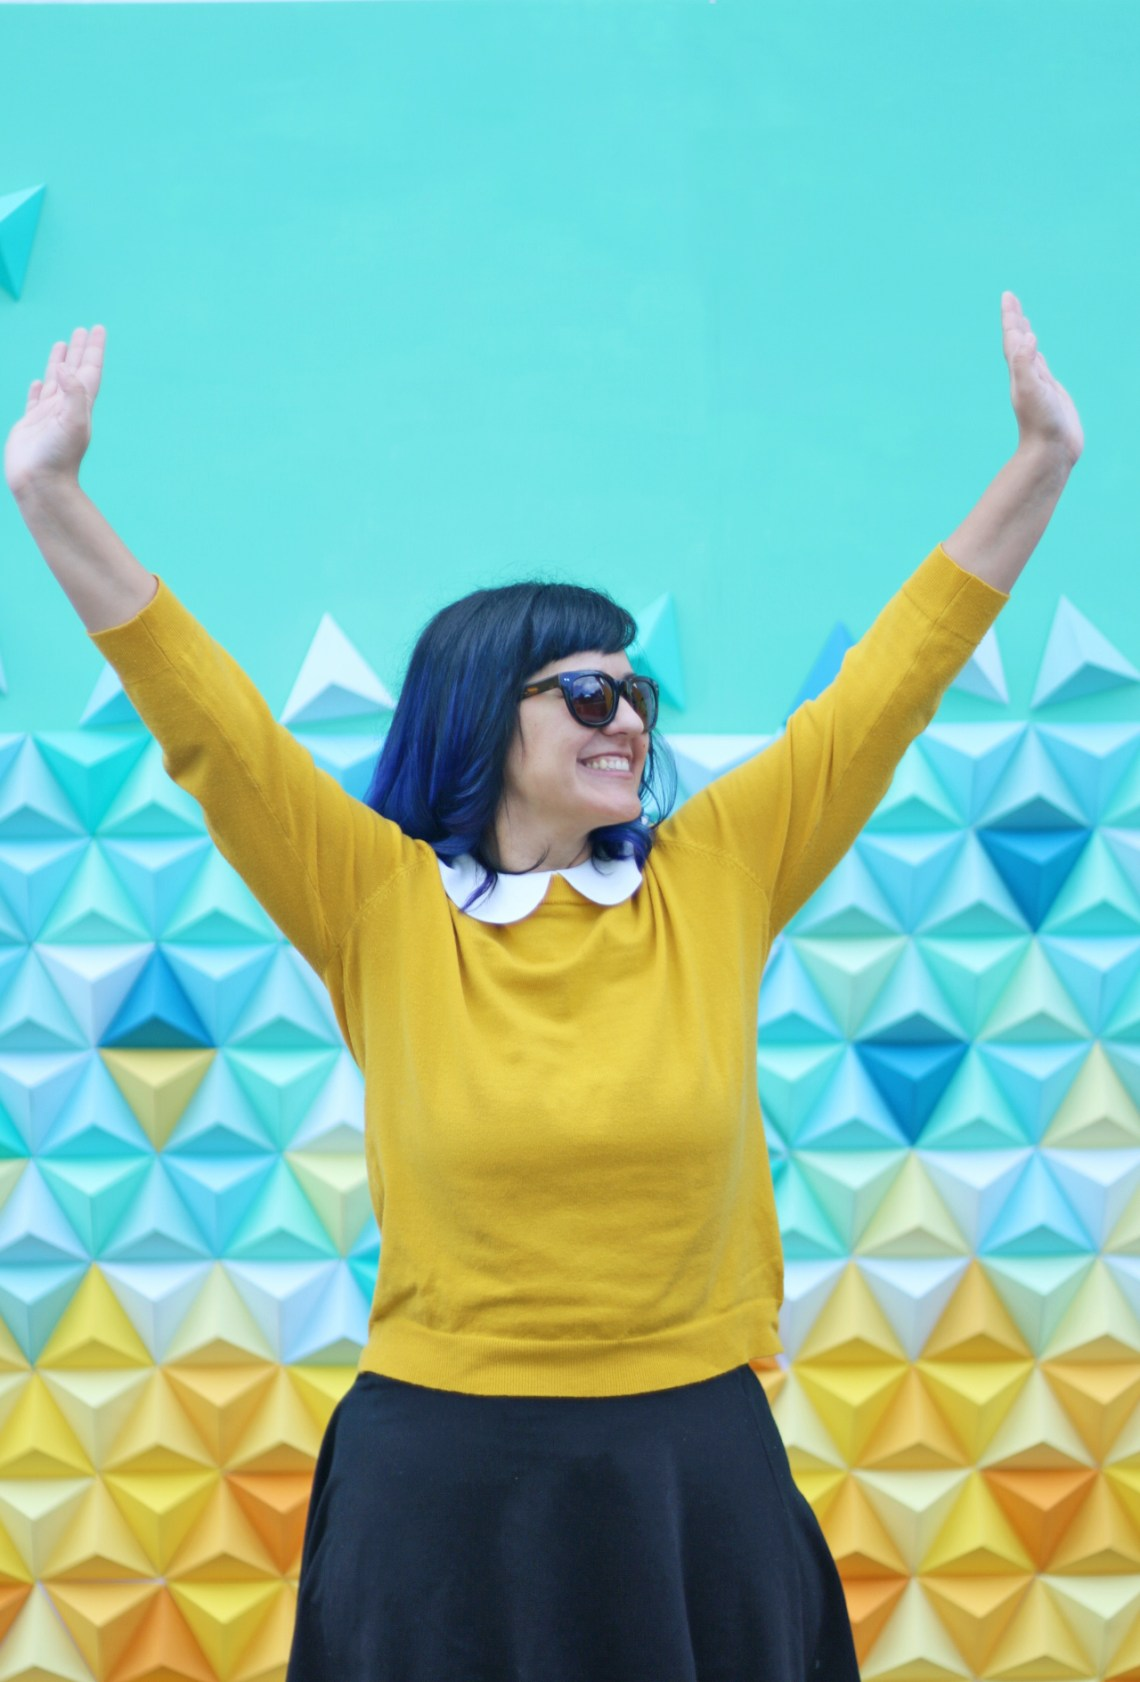 Origami Triangles Backdrop for stage and photos by Dapper Animals